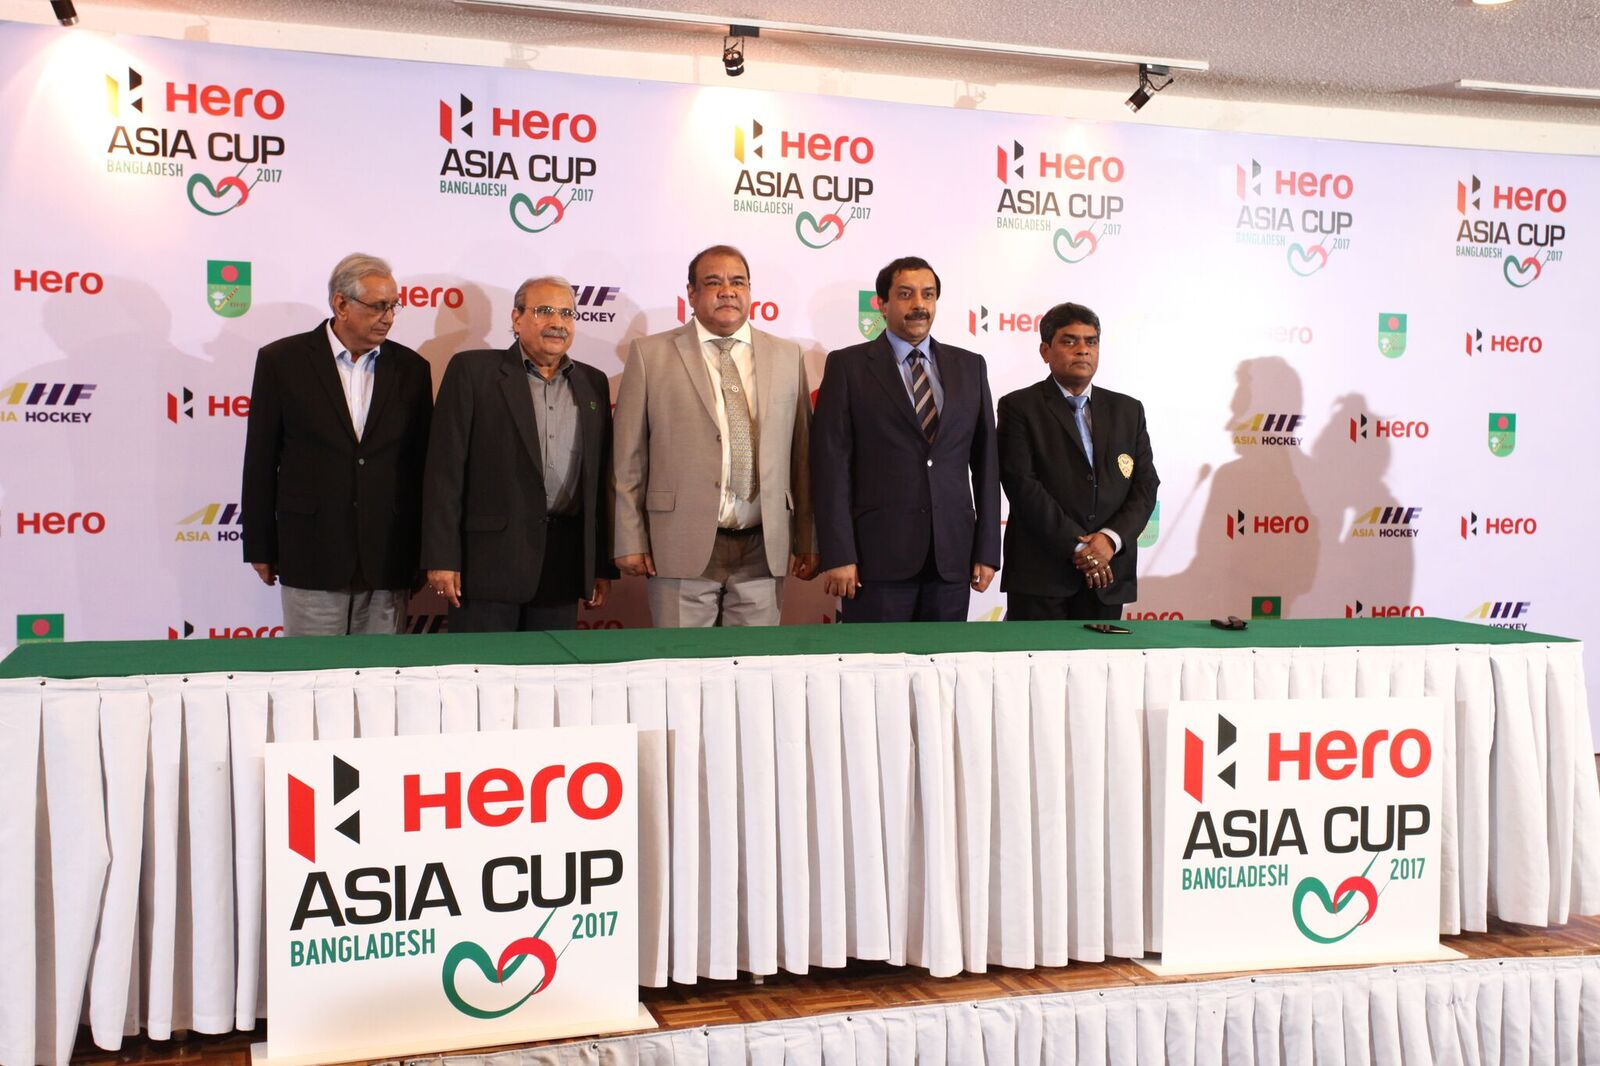 HERO MOTOCORP TO BE THE TITLE SPONSOR OF MEN'S ASIA CUP 2017